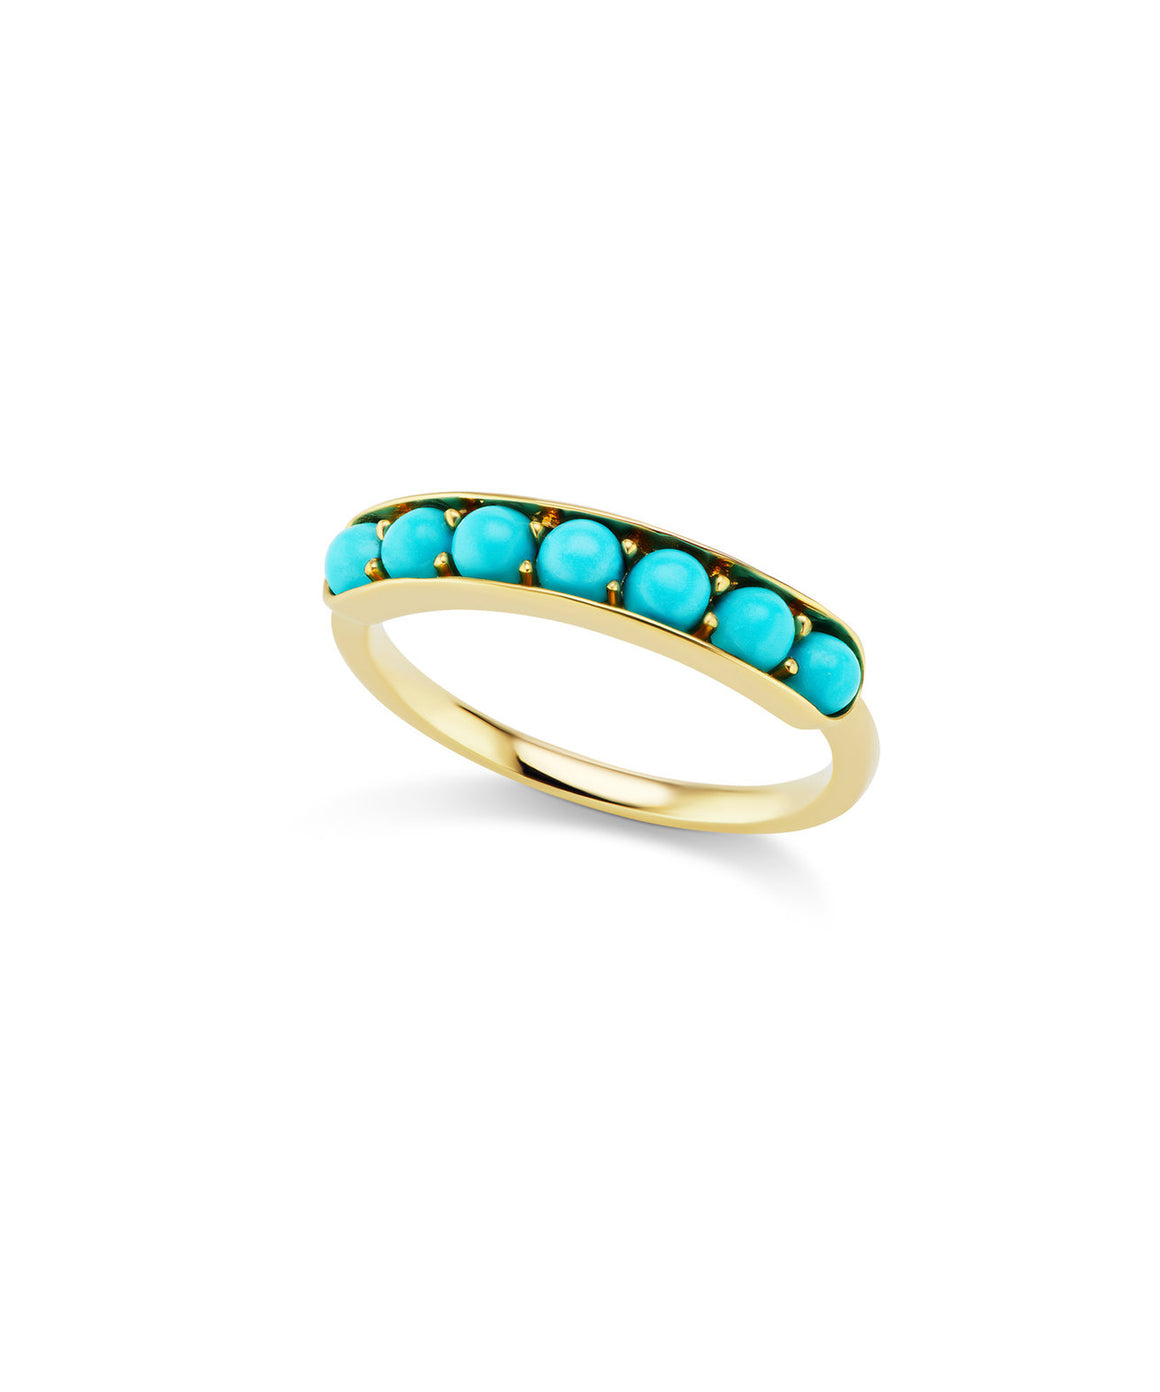 Large half eternity band with turquoise